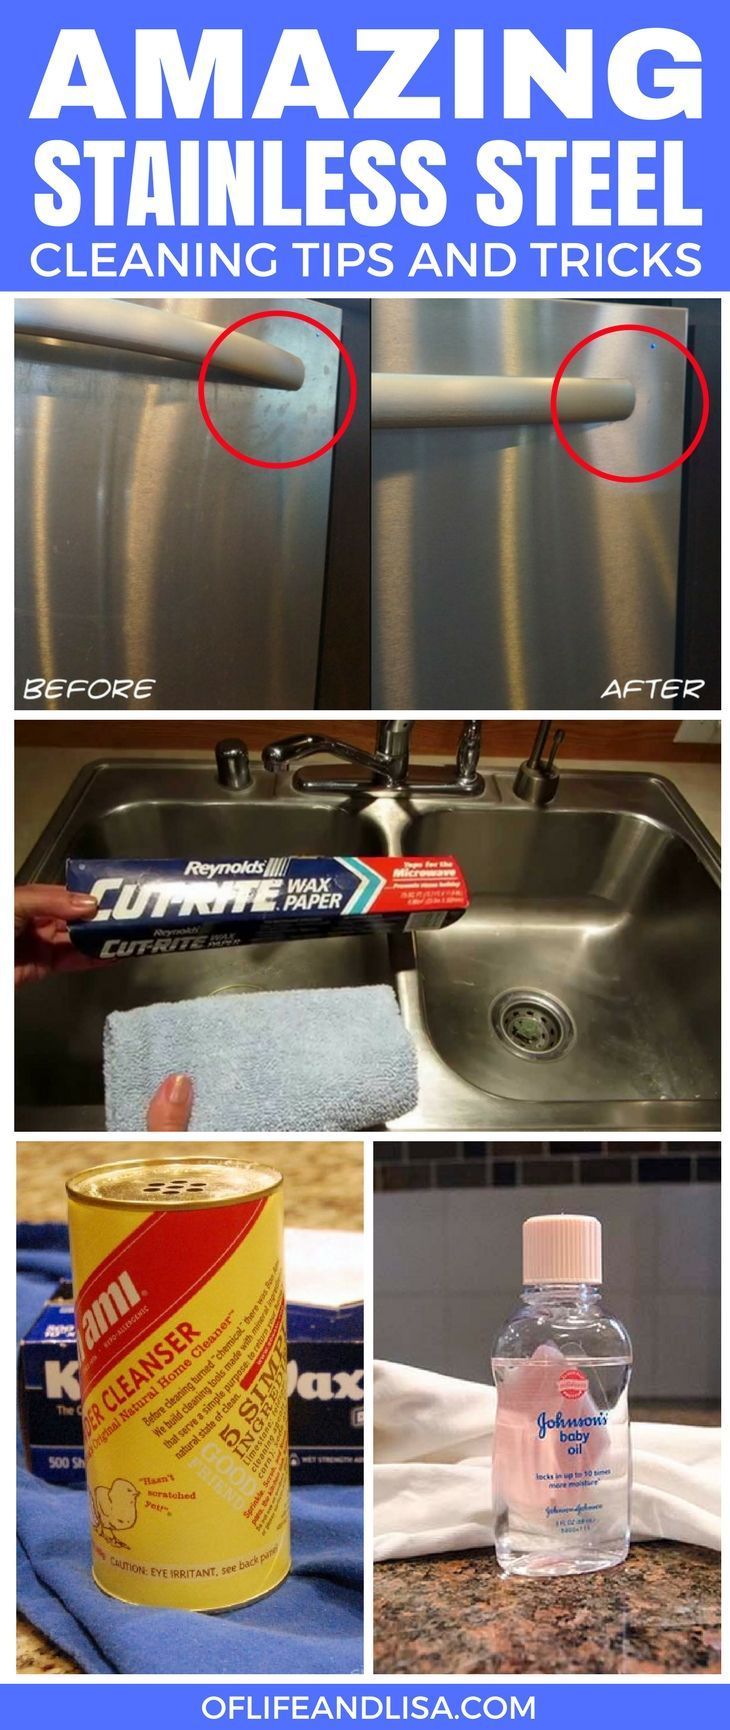 These are the BEST tips on cleaning stainless steel that I have ever seen.